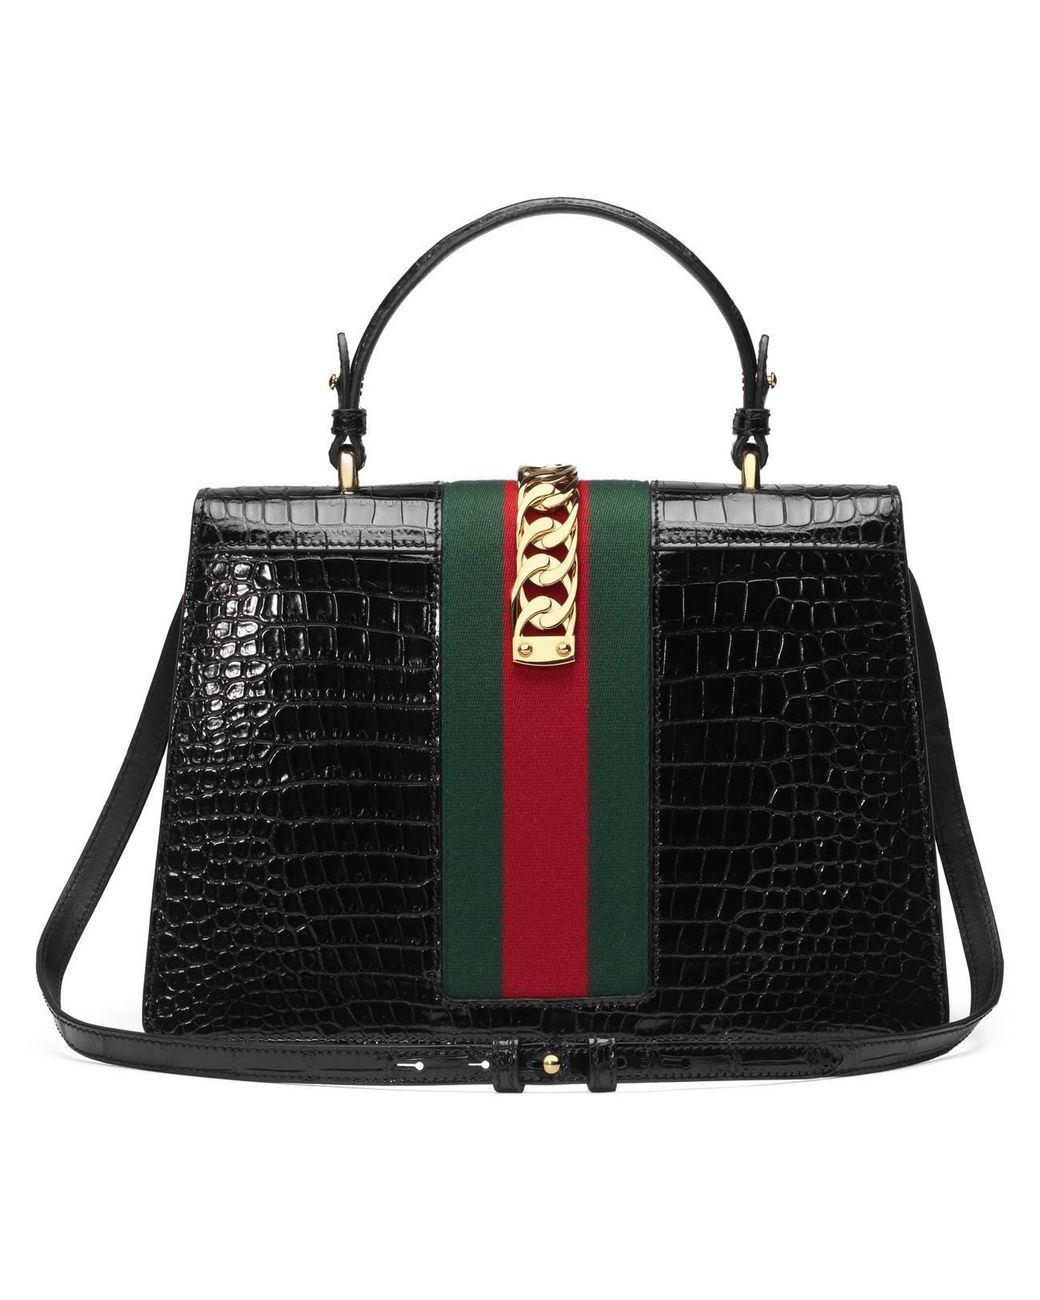 60aca6e847a474 Gucci Sylvie Medium Crocodile Top Handle Bag in Black - Lyst